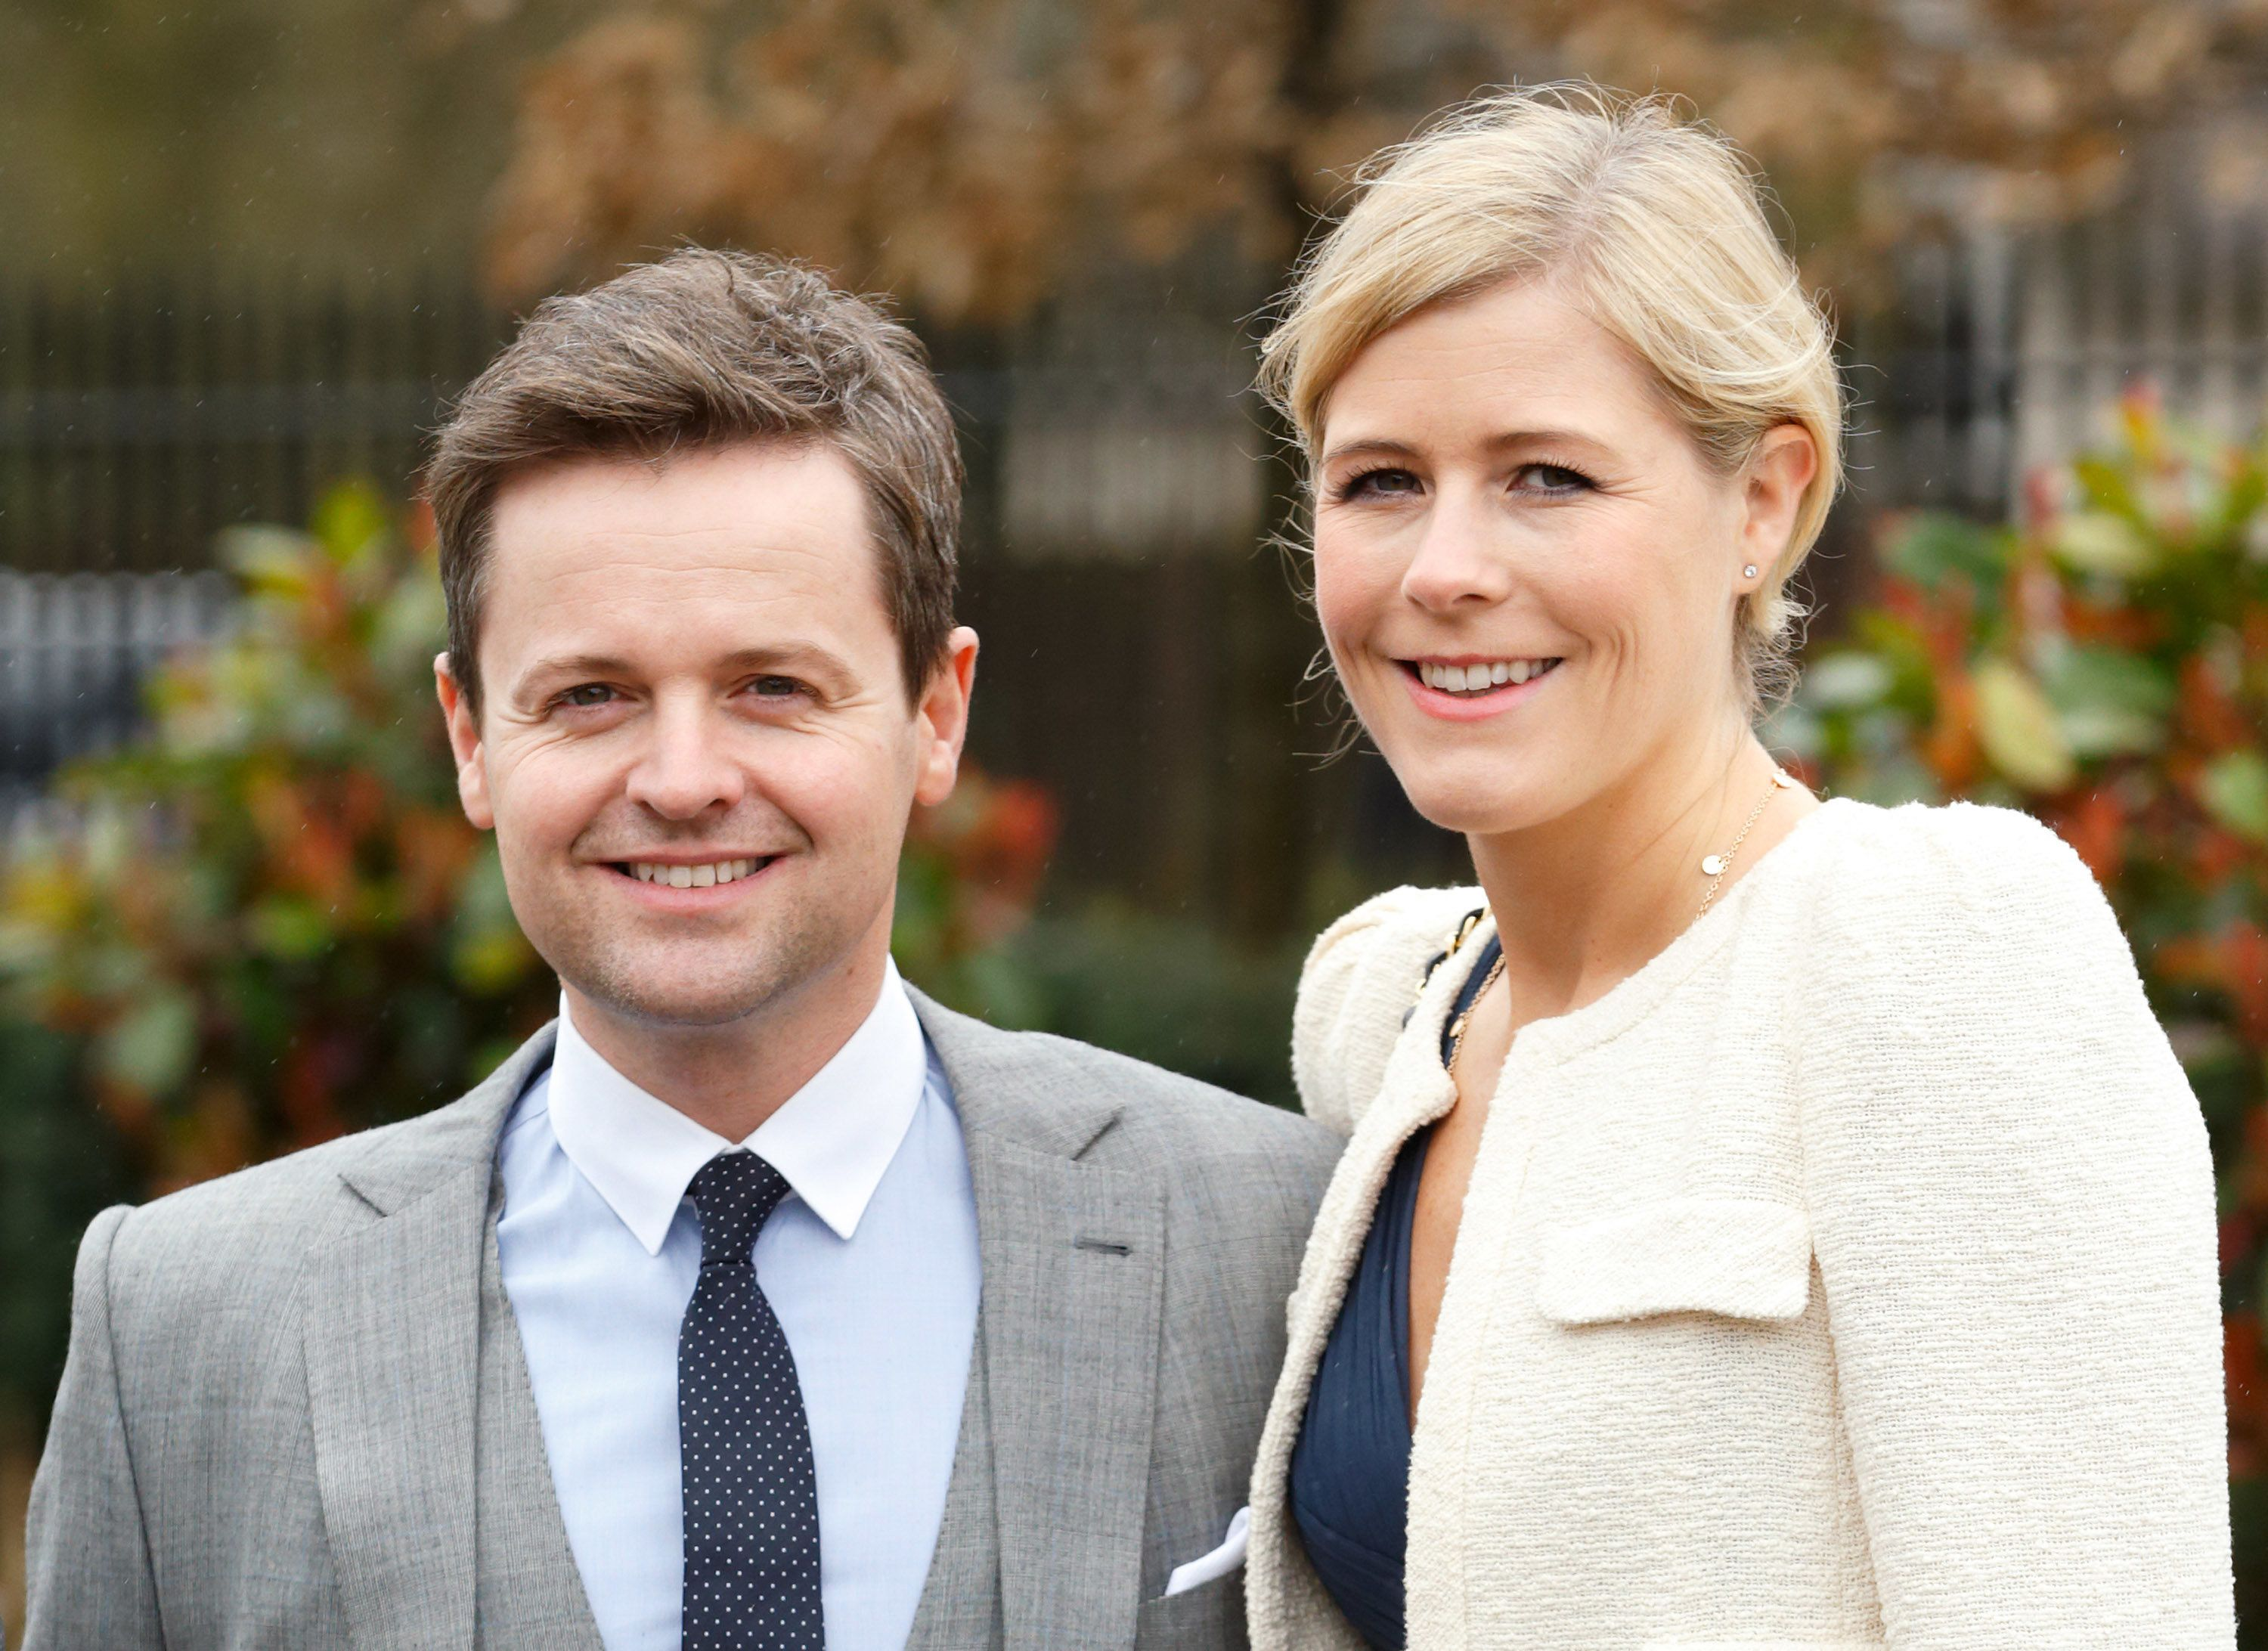 Declan Donnelly Reveals Wife Ali Astall Is Pregnant With Their First Child